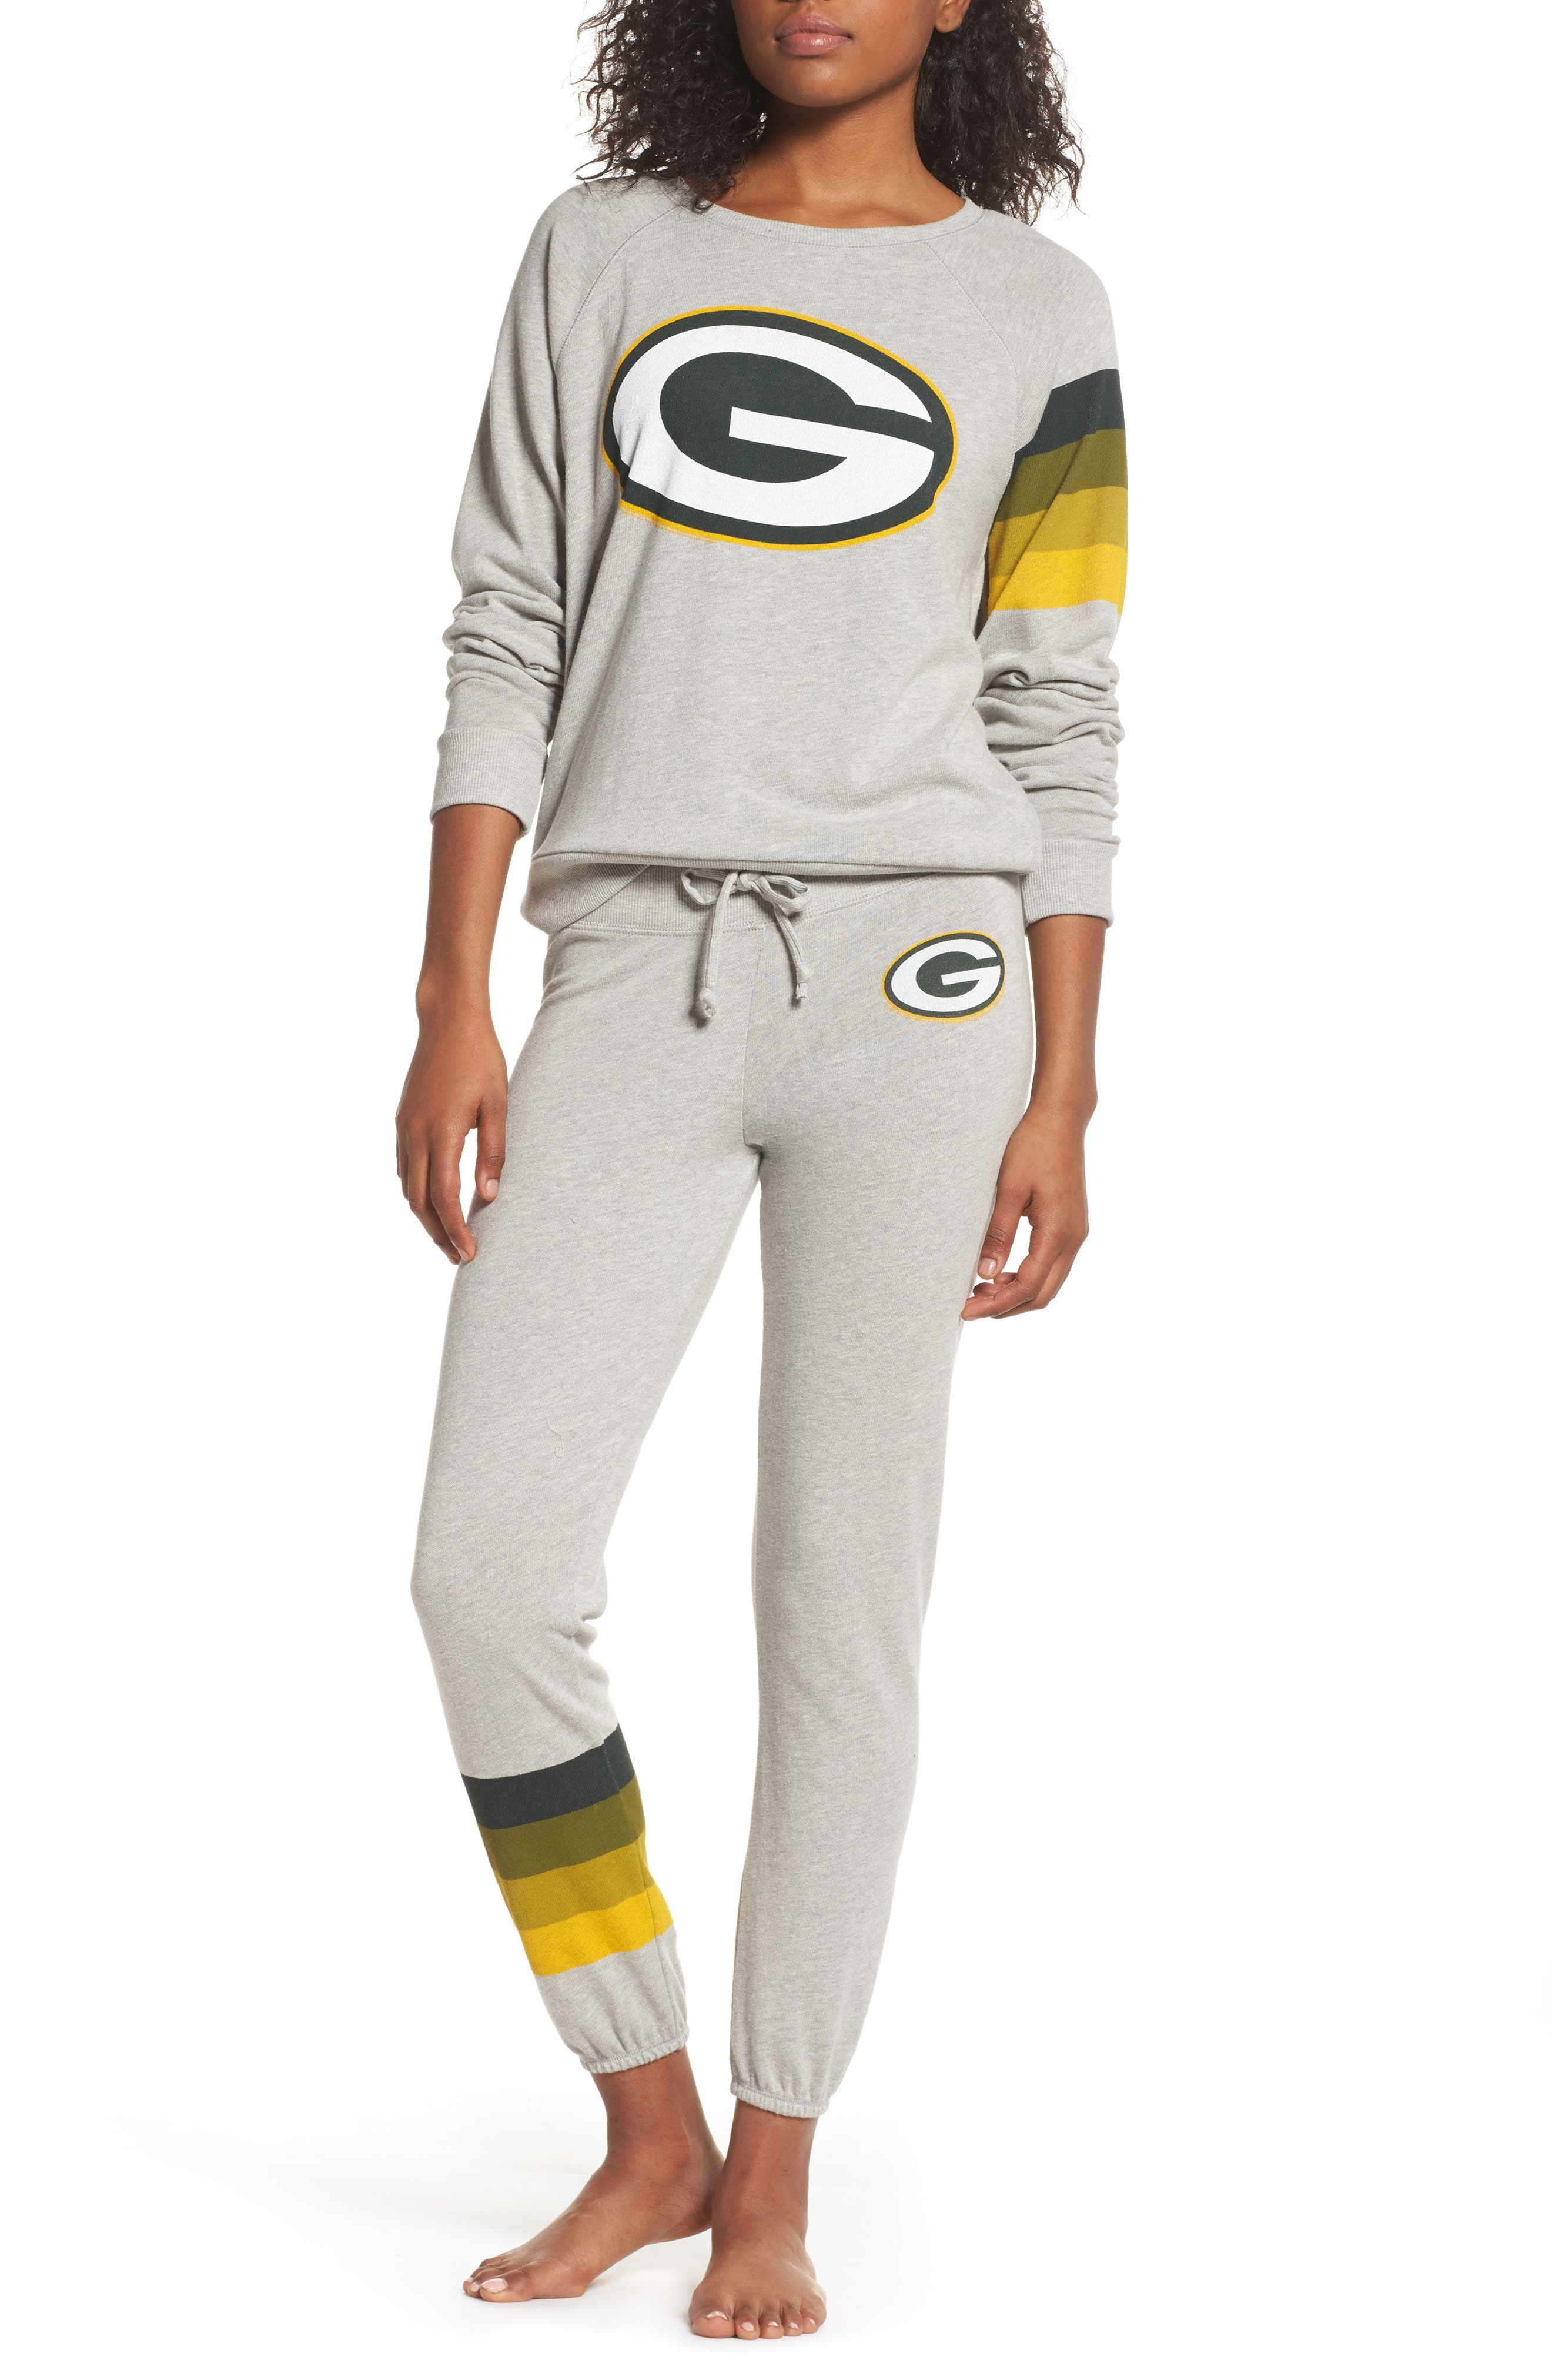 NFL Green Bay Packers Hacci Sweatpants,                             Alternate thumbnail 6, color,                             Dove Heather Grey